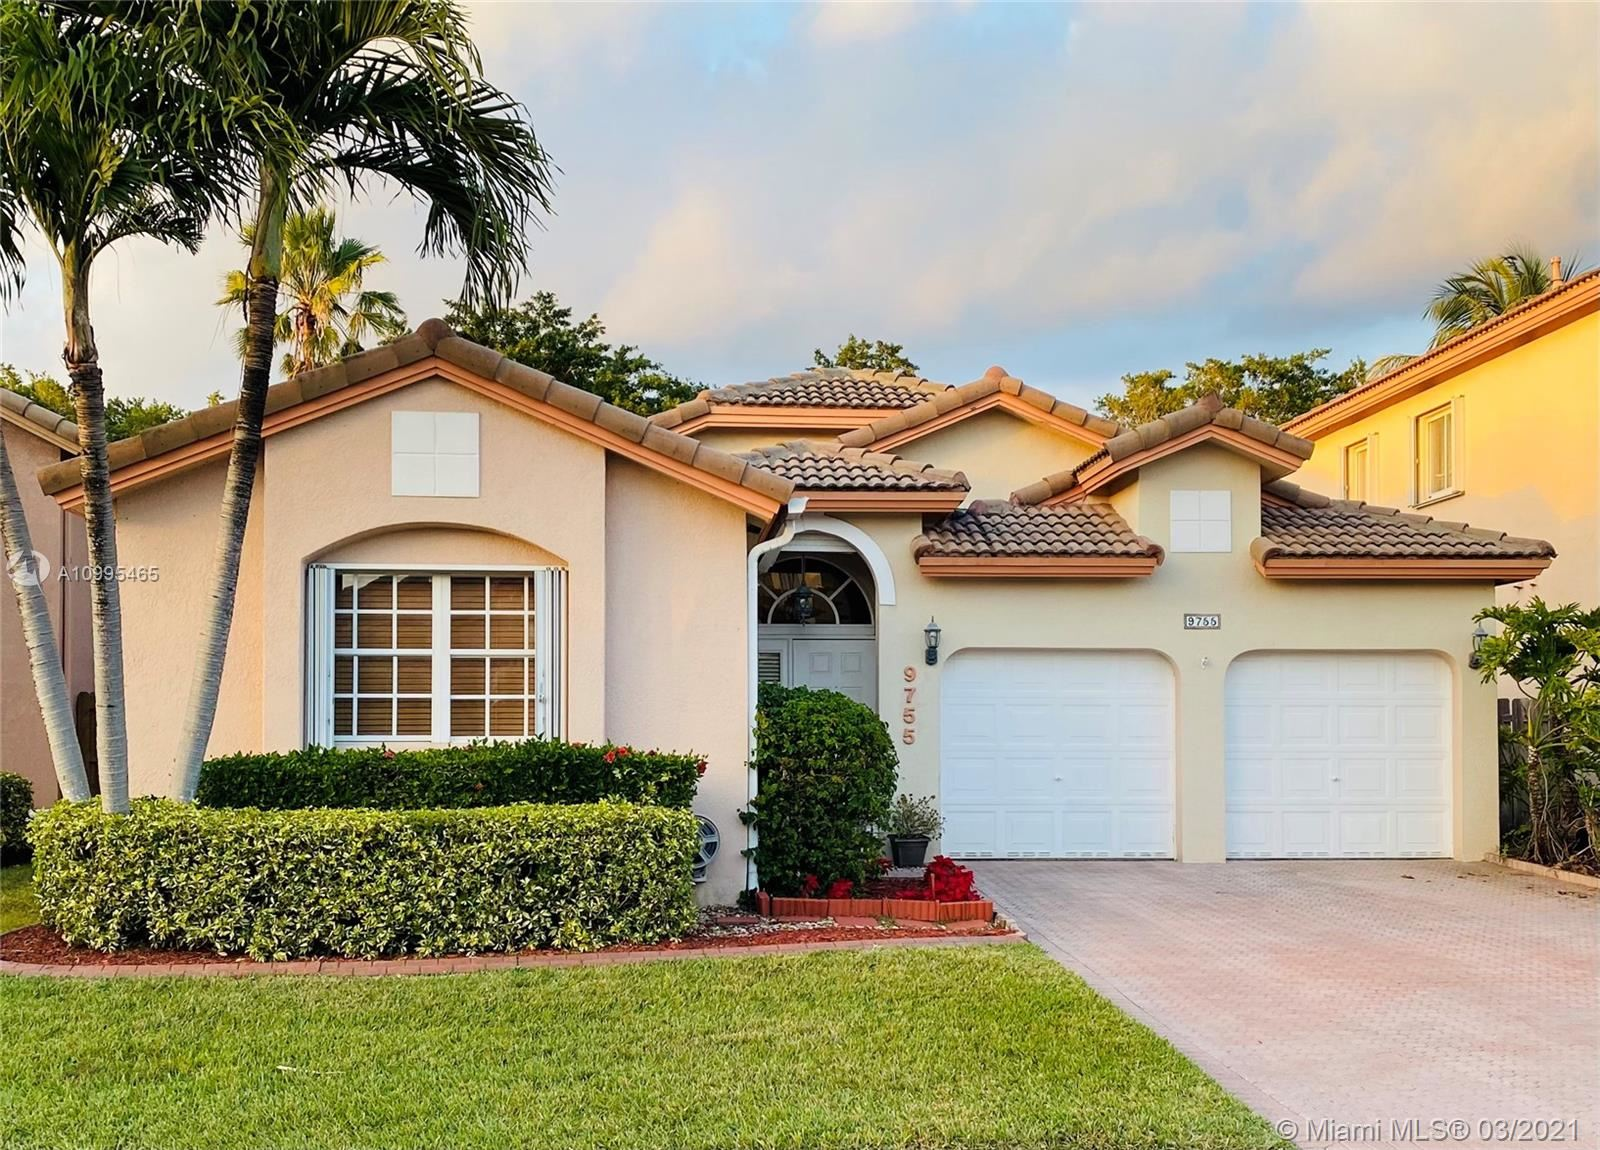 9755 NW 32nd St, Doral, FL 33172 - #: A10995465